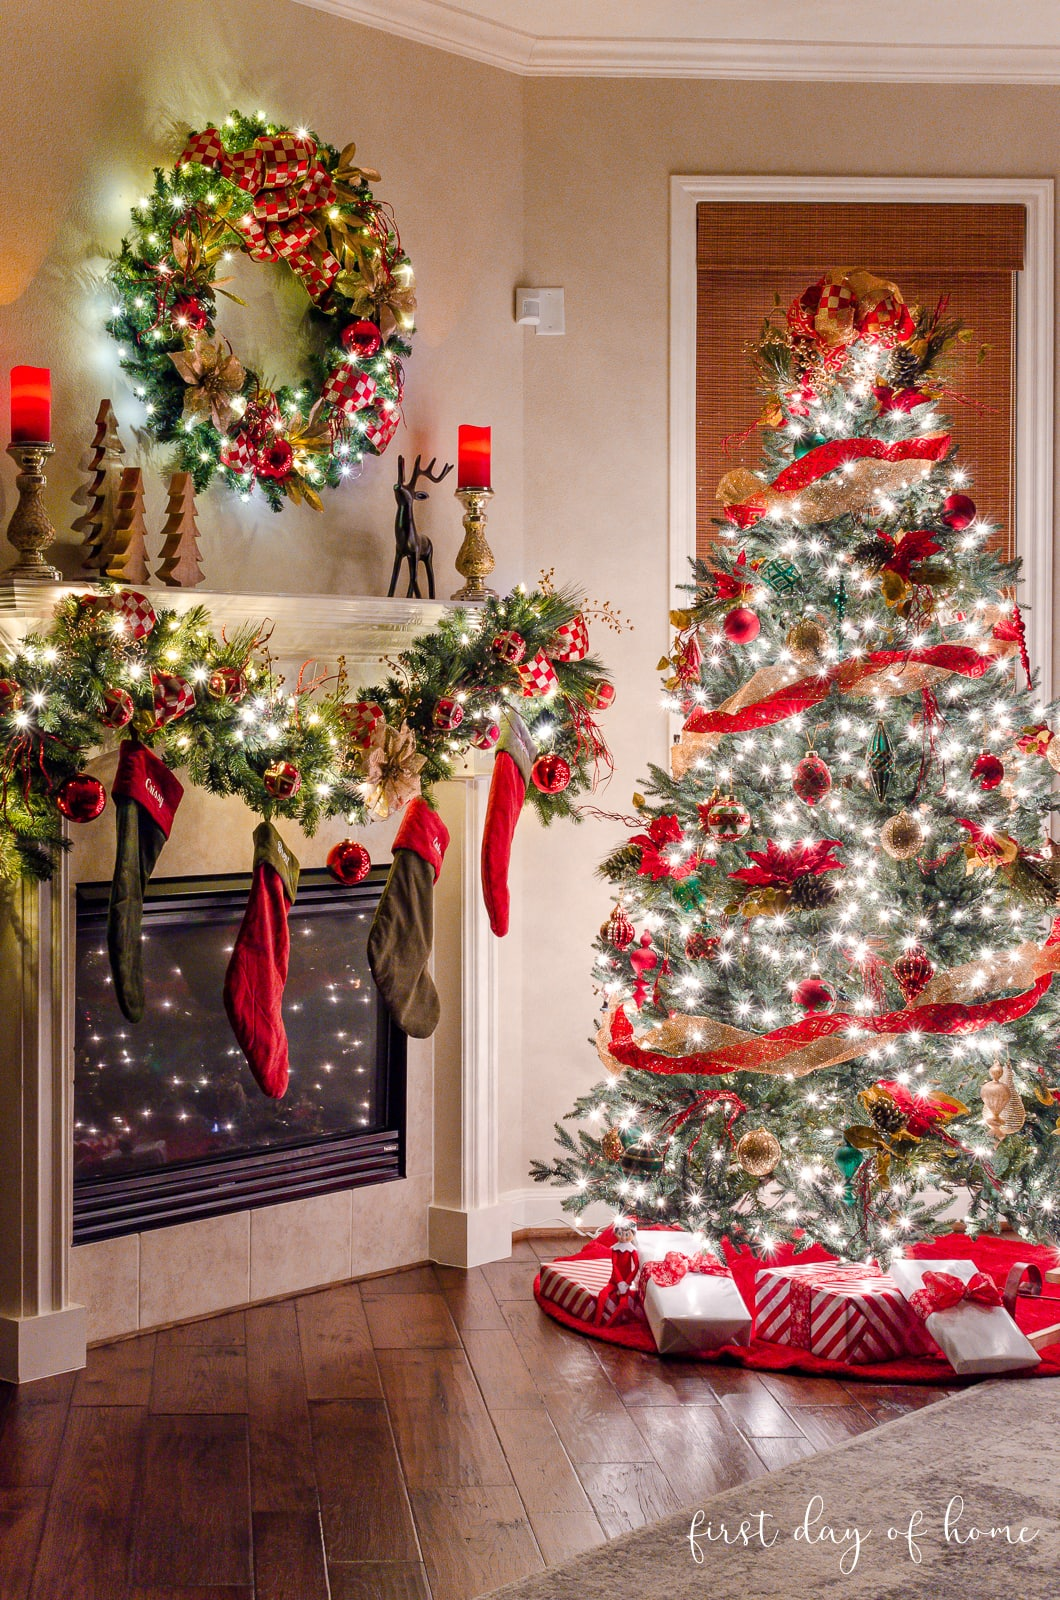 Christmas tree decorated with red and gold ribbon and floral picks for accents with coordinating garland and wreath on mantel